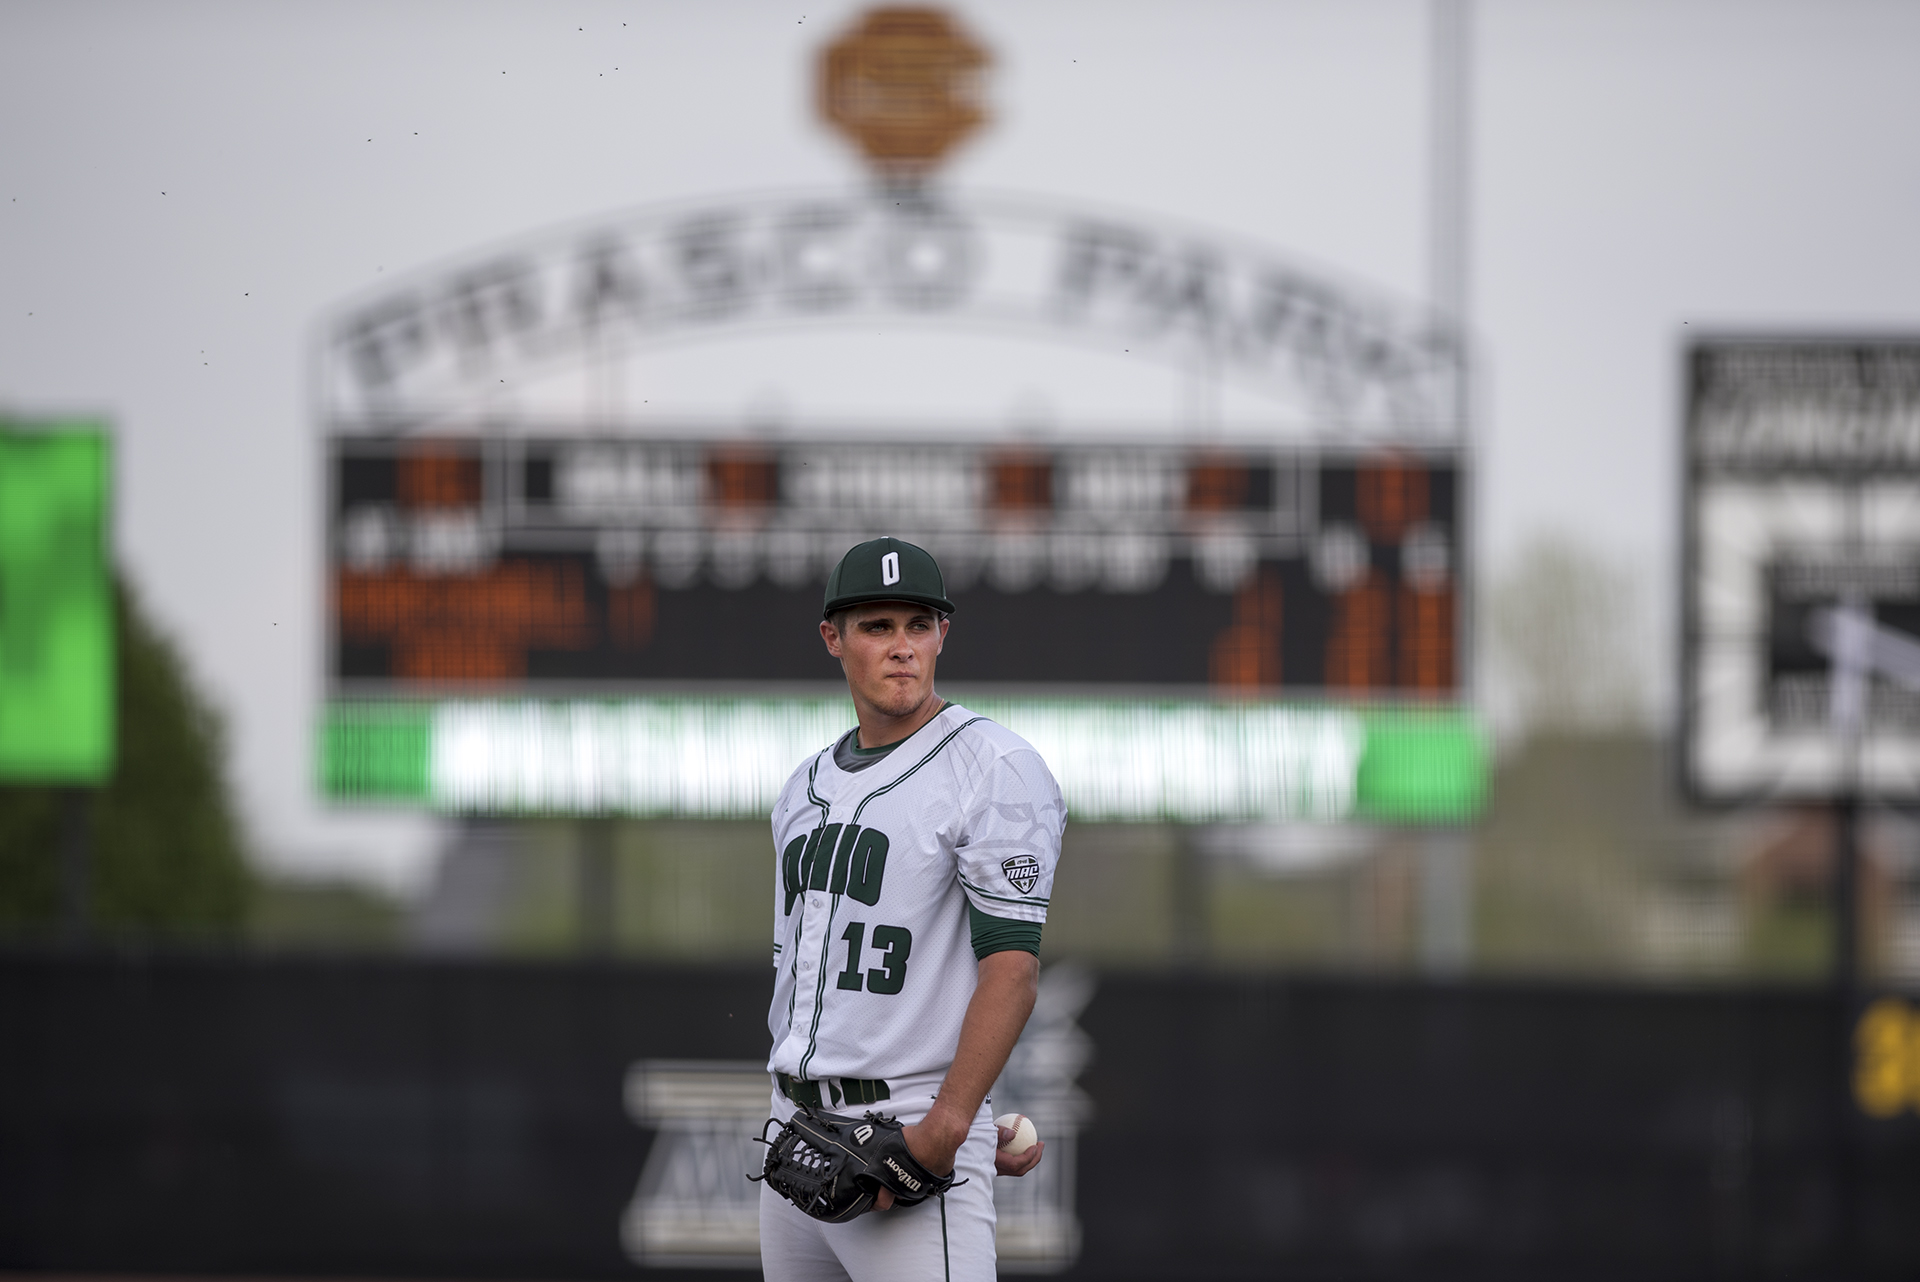 Ohio University's Nick Kamrada prepares for the pitch during the Bobcats game against Marshall University on April 19, 2017 at Prasco Park in Mason, Ohio.